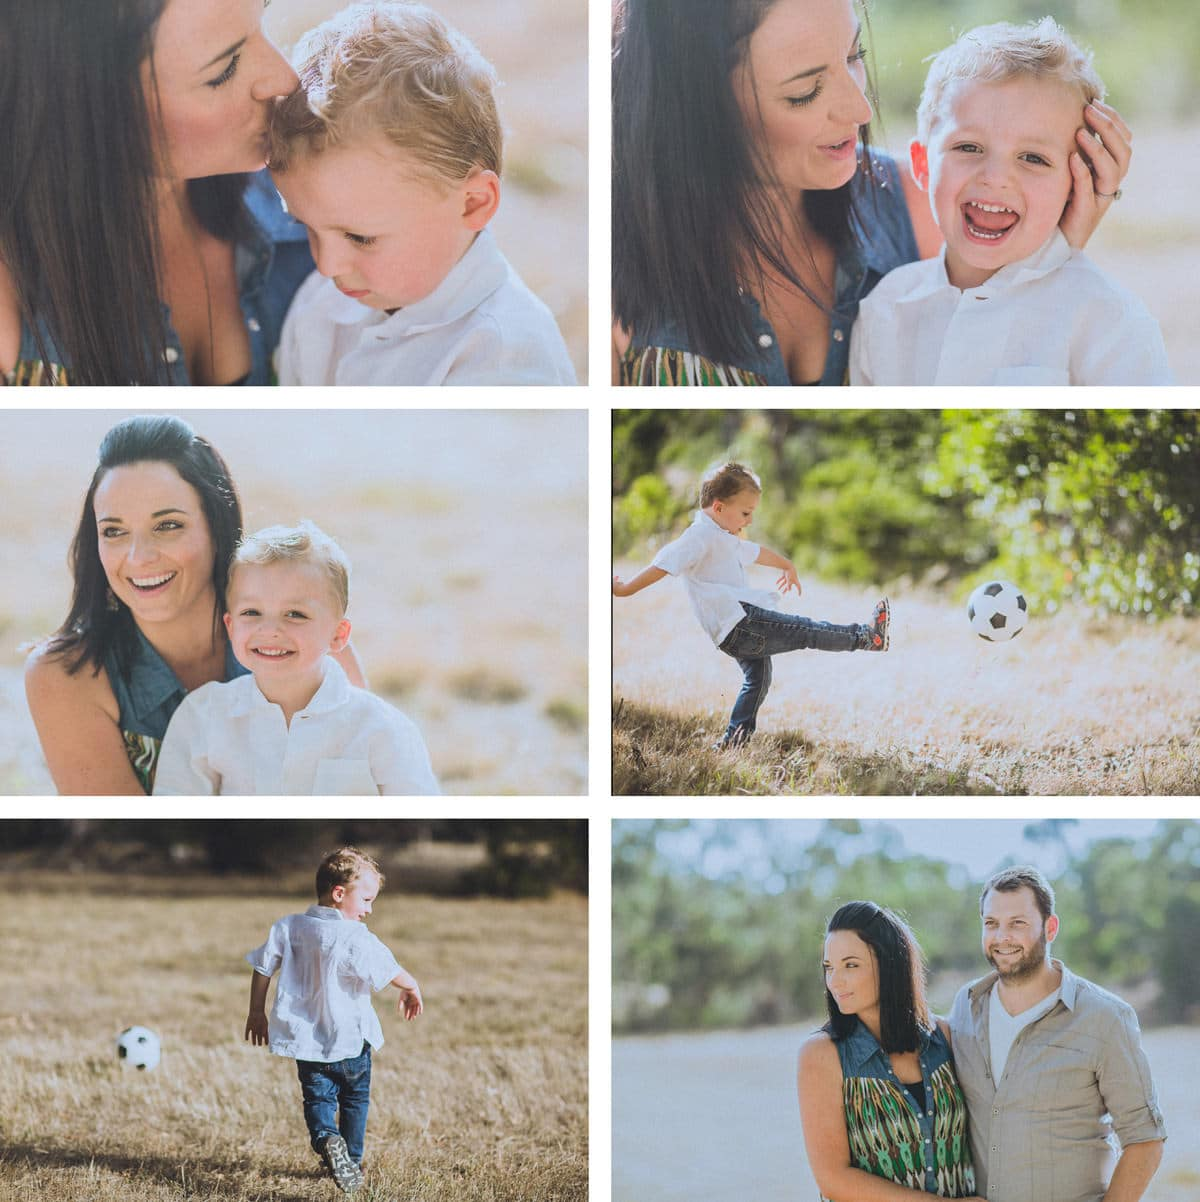 Family Photography in Melbourne - Natural photos showing emotion, fun and candid moments